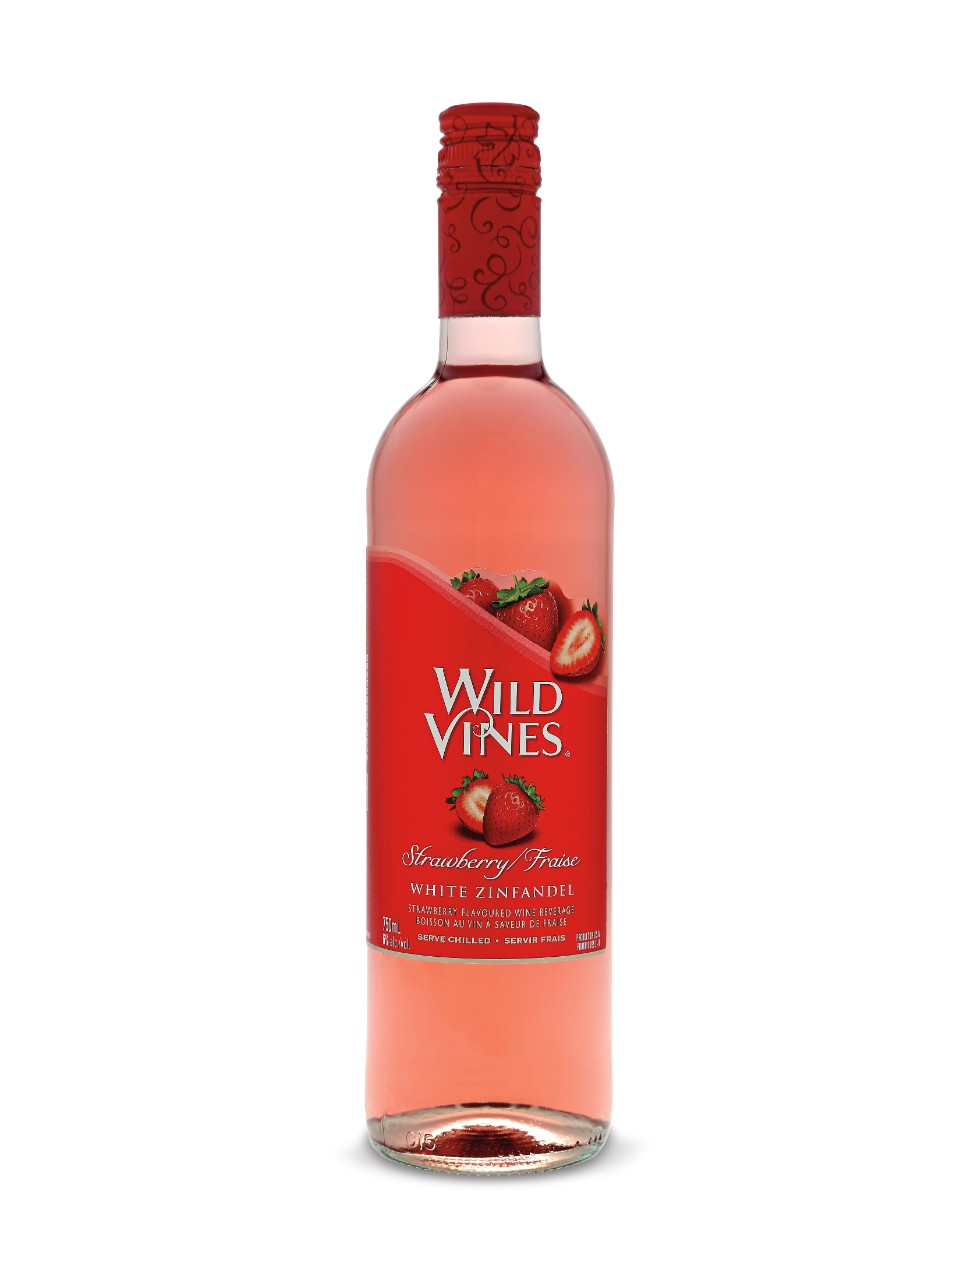 Wild Vines Strawberry White Zinfandel from LCBO